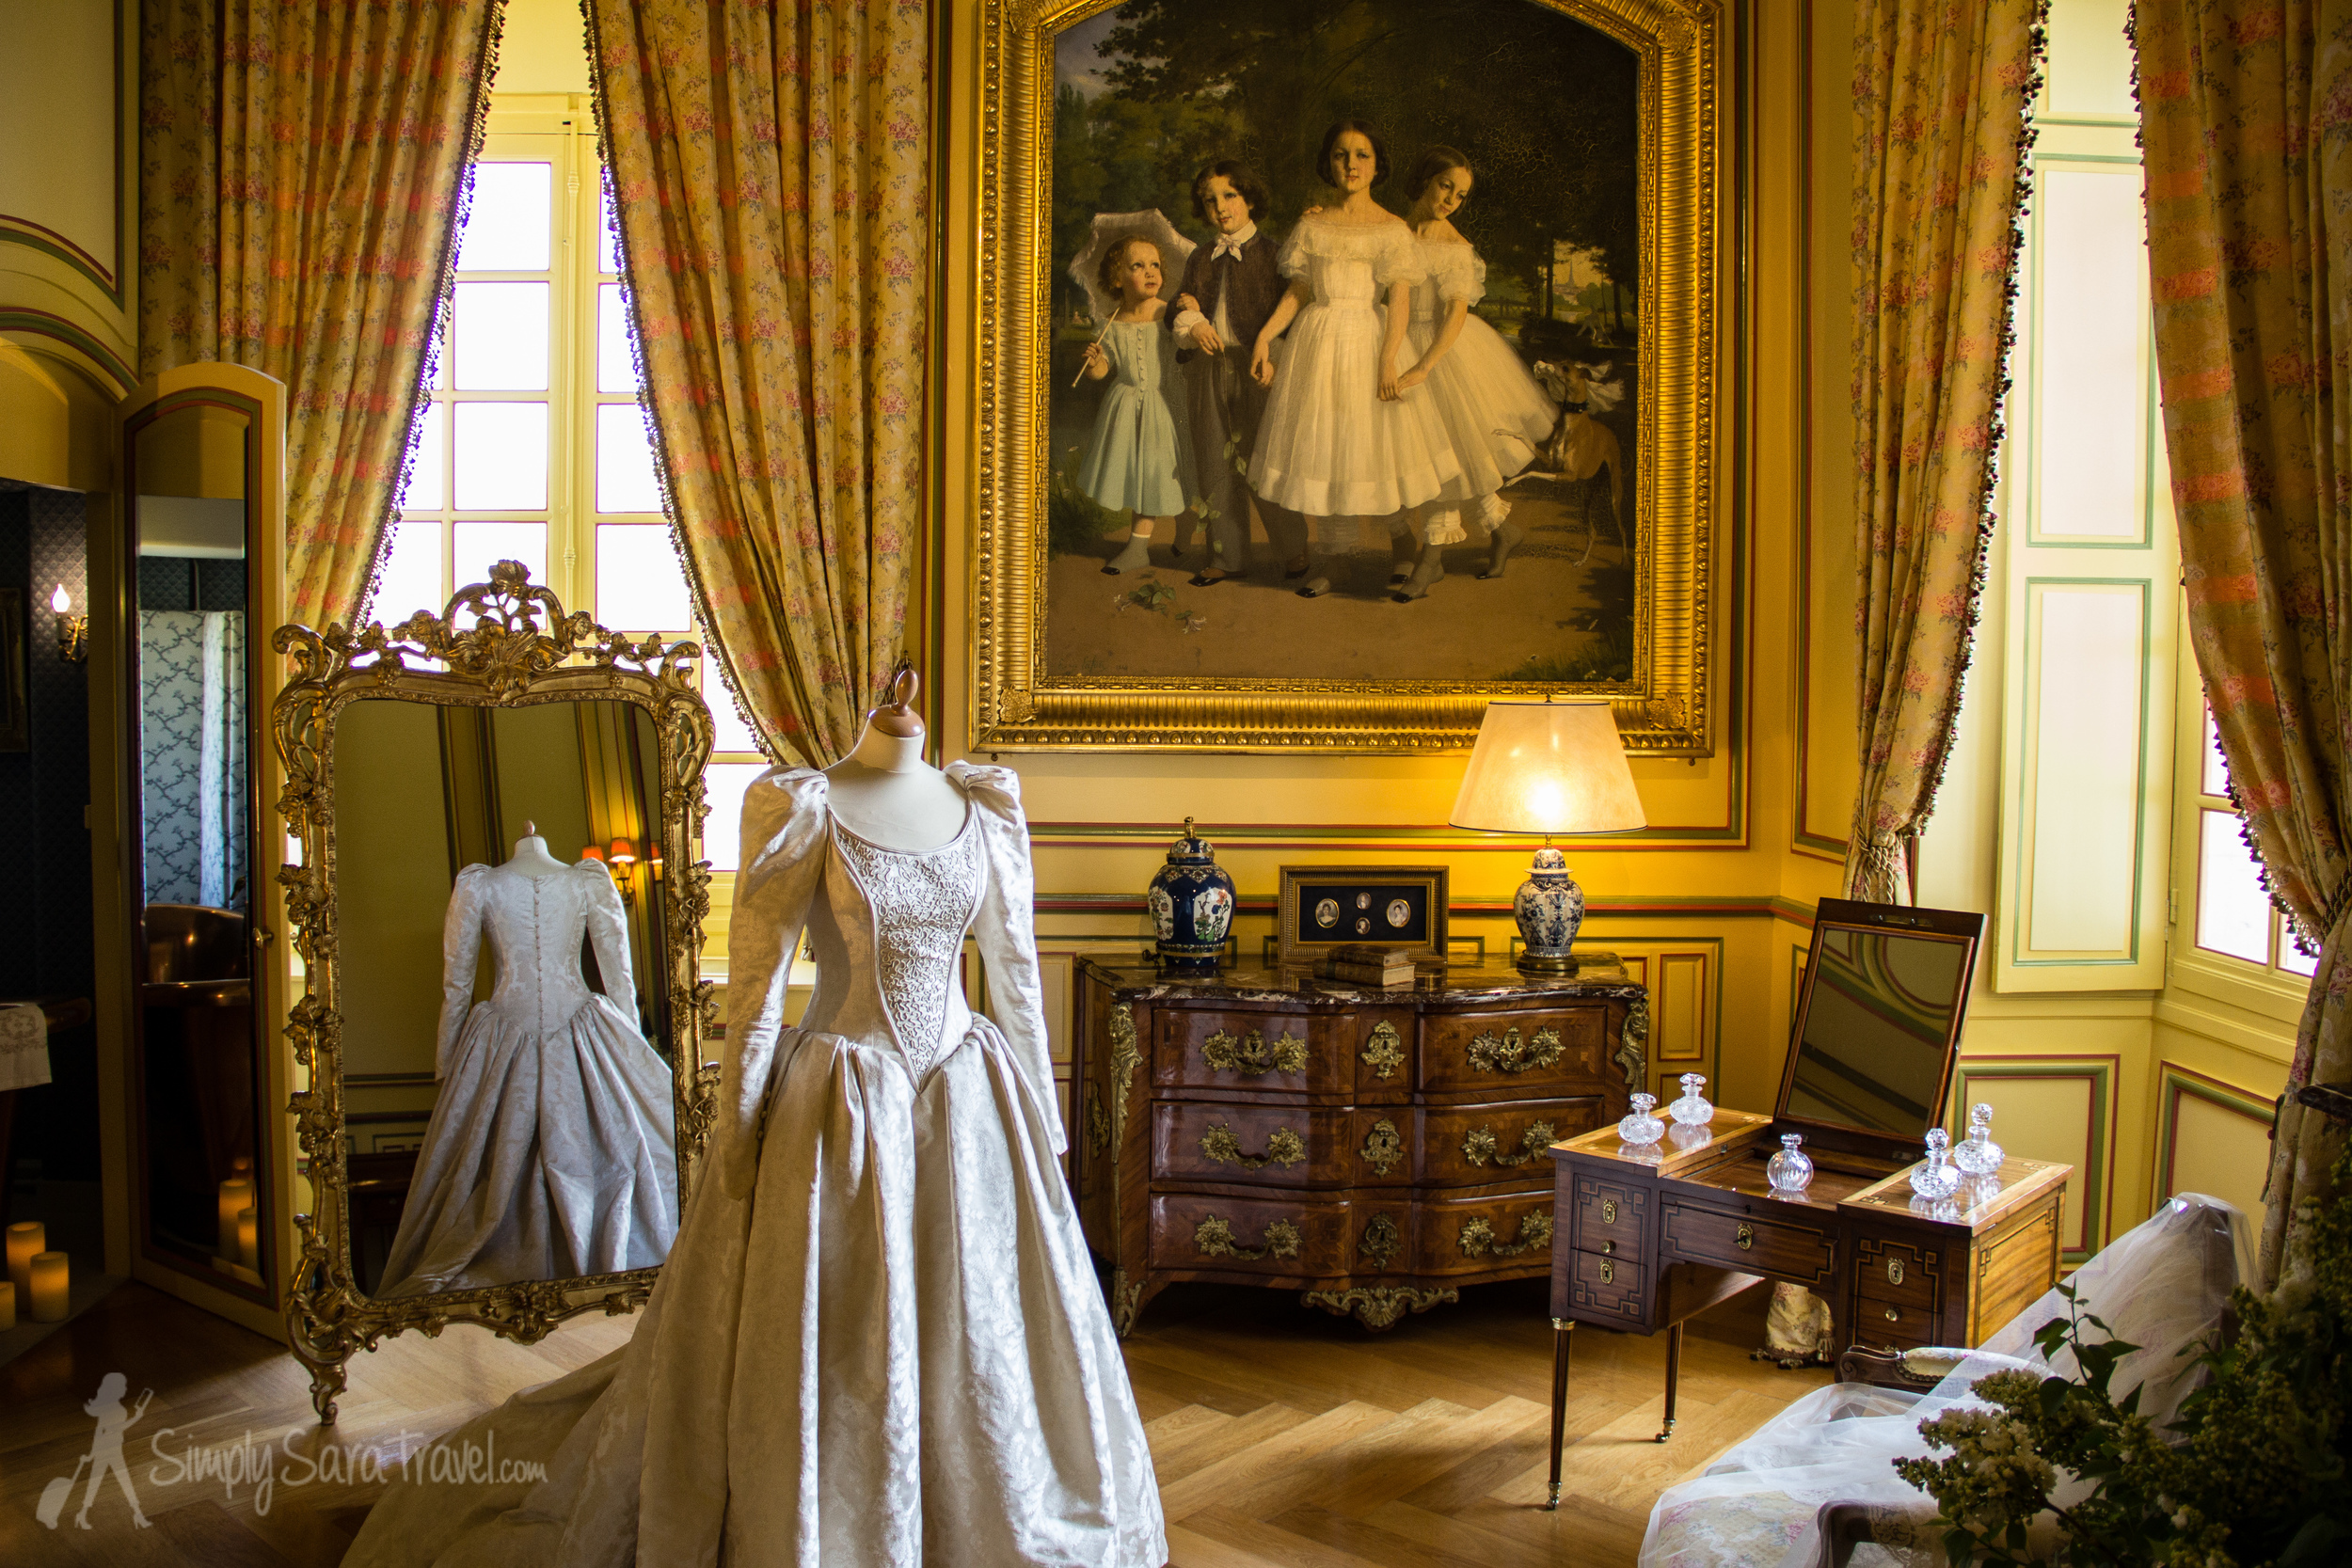 TheHurault family still lives in the château on the third floor (not open to the public). The château has been in the family forover 6 centuries, though they lost ownership of it twice over the years. Now descendants of the Hurault family live here, and this wedding dress on display was worn by the Marquise de Vibraye in 1994.